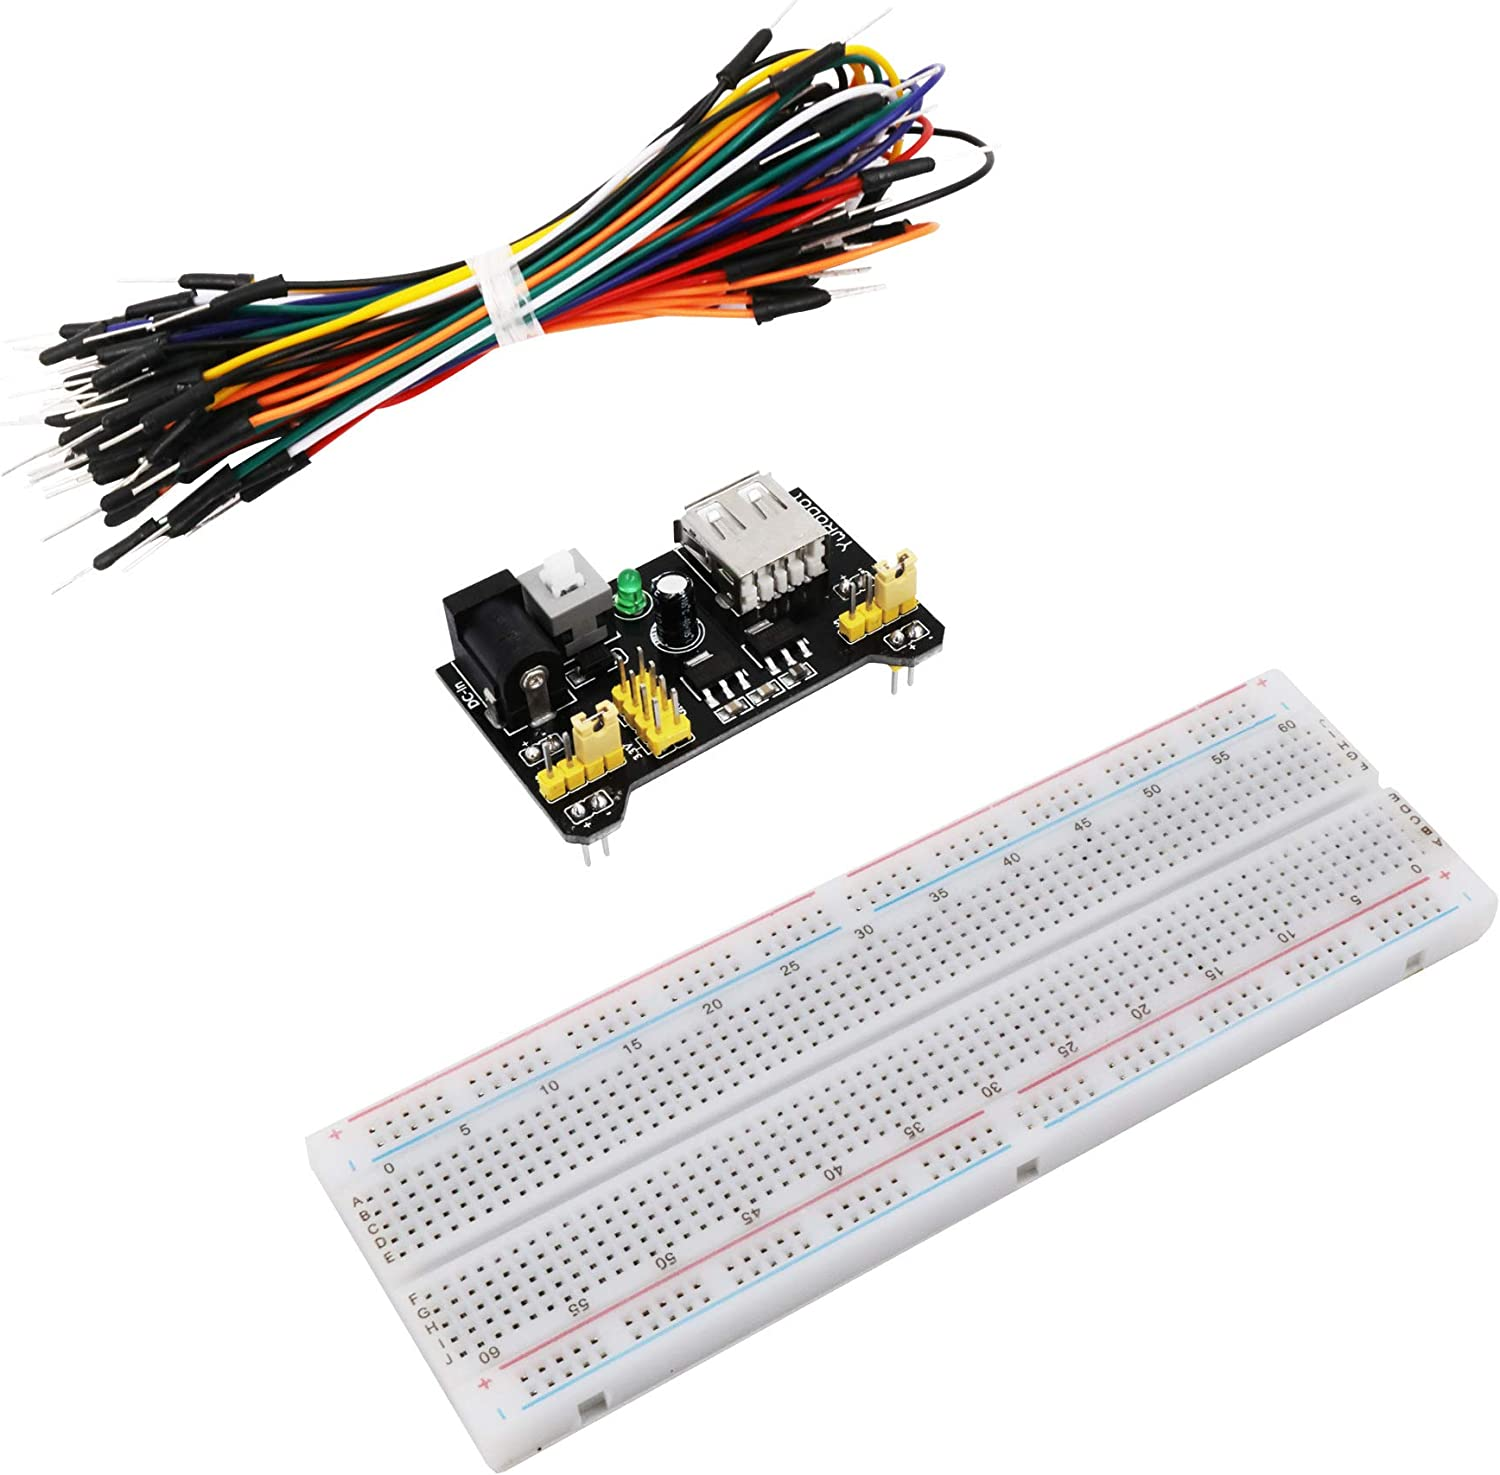 Popular Free shipping anywhere in the nation product DGZZI 1Set Electronics Fun Kit 1PCS Power + Module S Supply